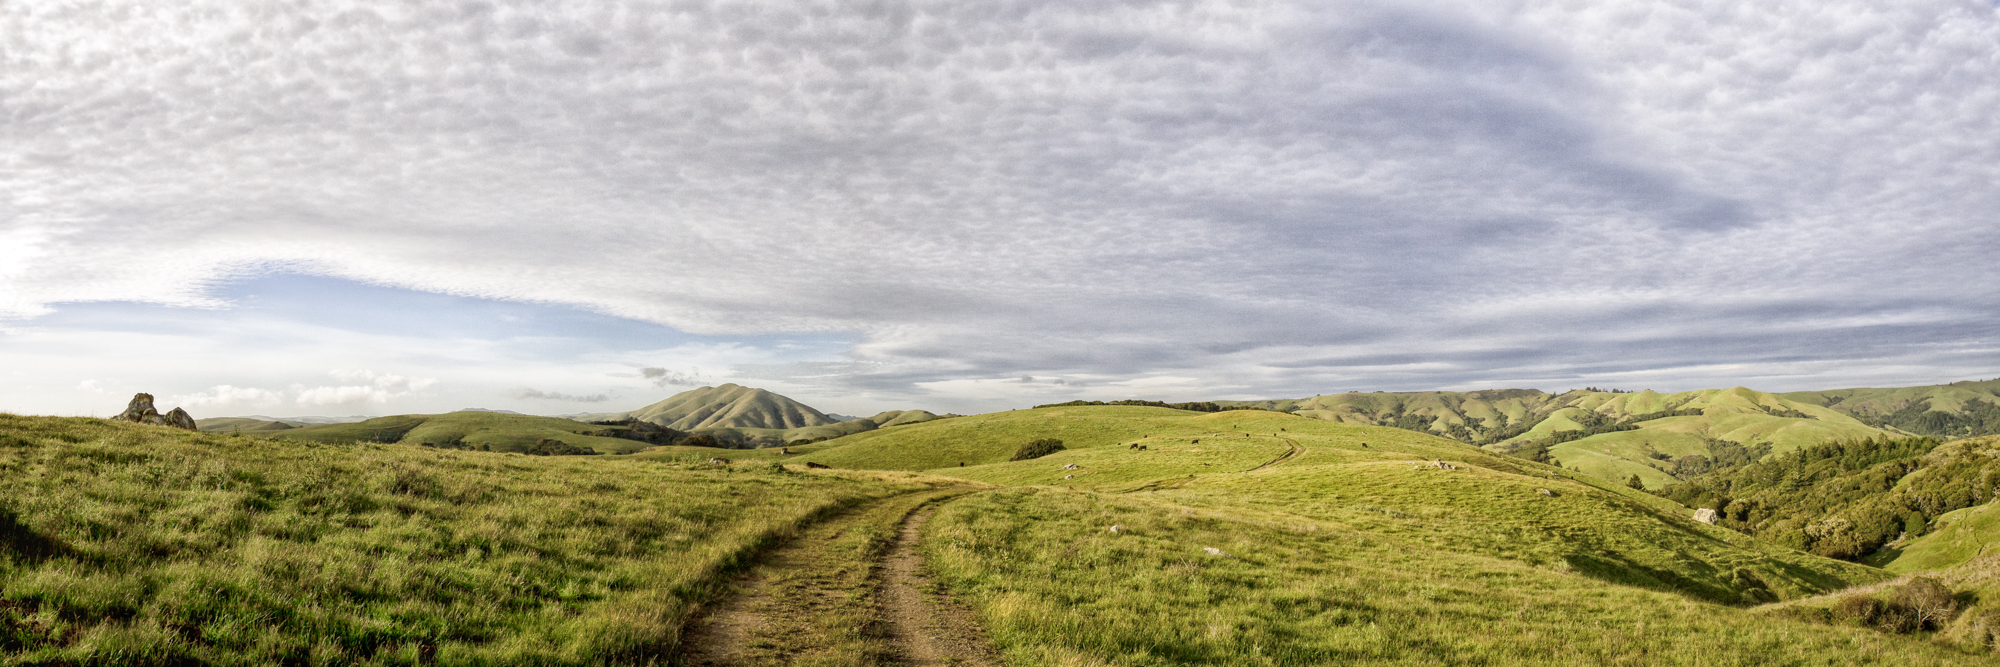 elizabeth-fenwick-photography-painterly-point-reyes-olema-elephant-moutain-bolinas-ridge-ca-sky-lines-.jpg